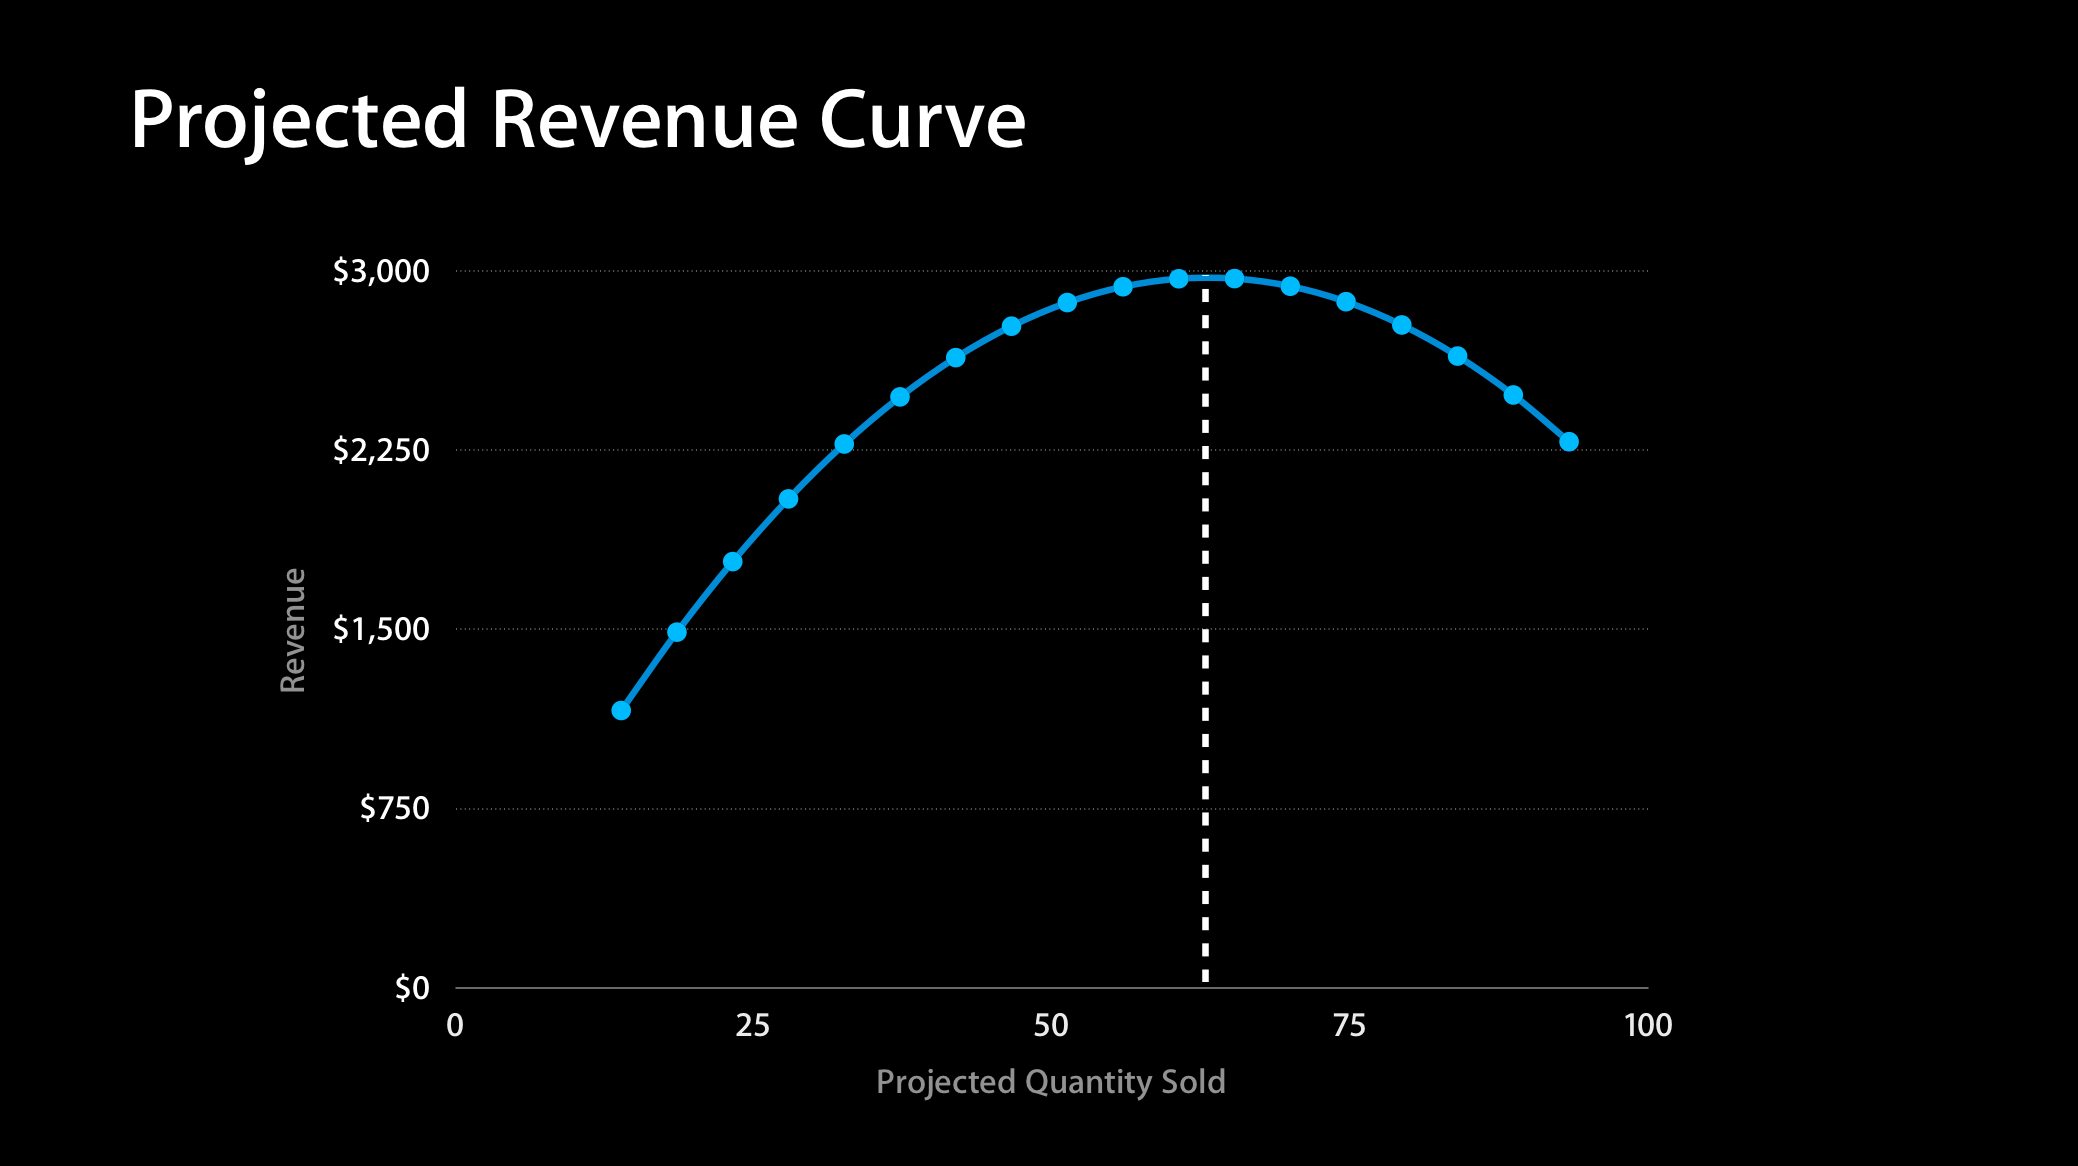 Graphing projected revenue based on predicted quantities and hoping to spot our revenue maximizing point.